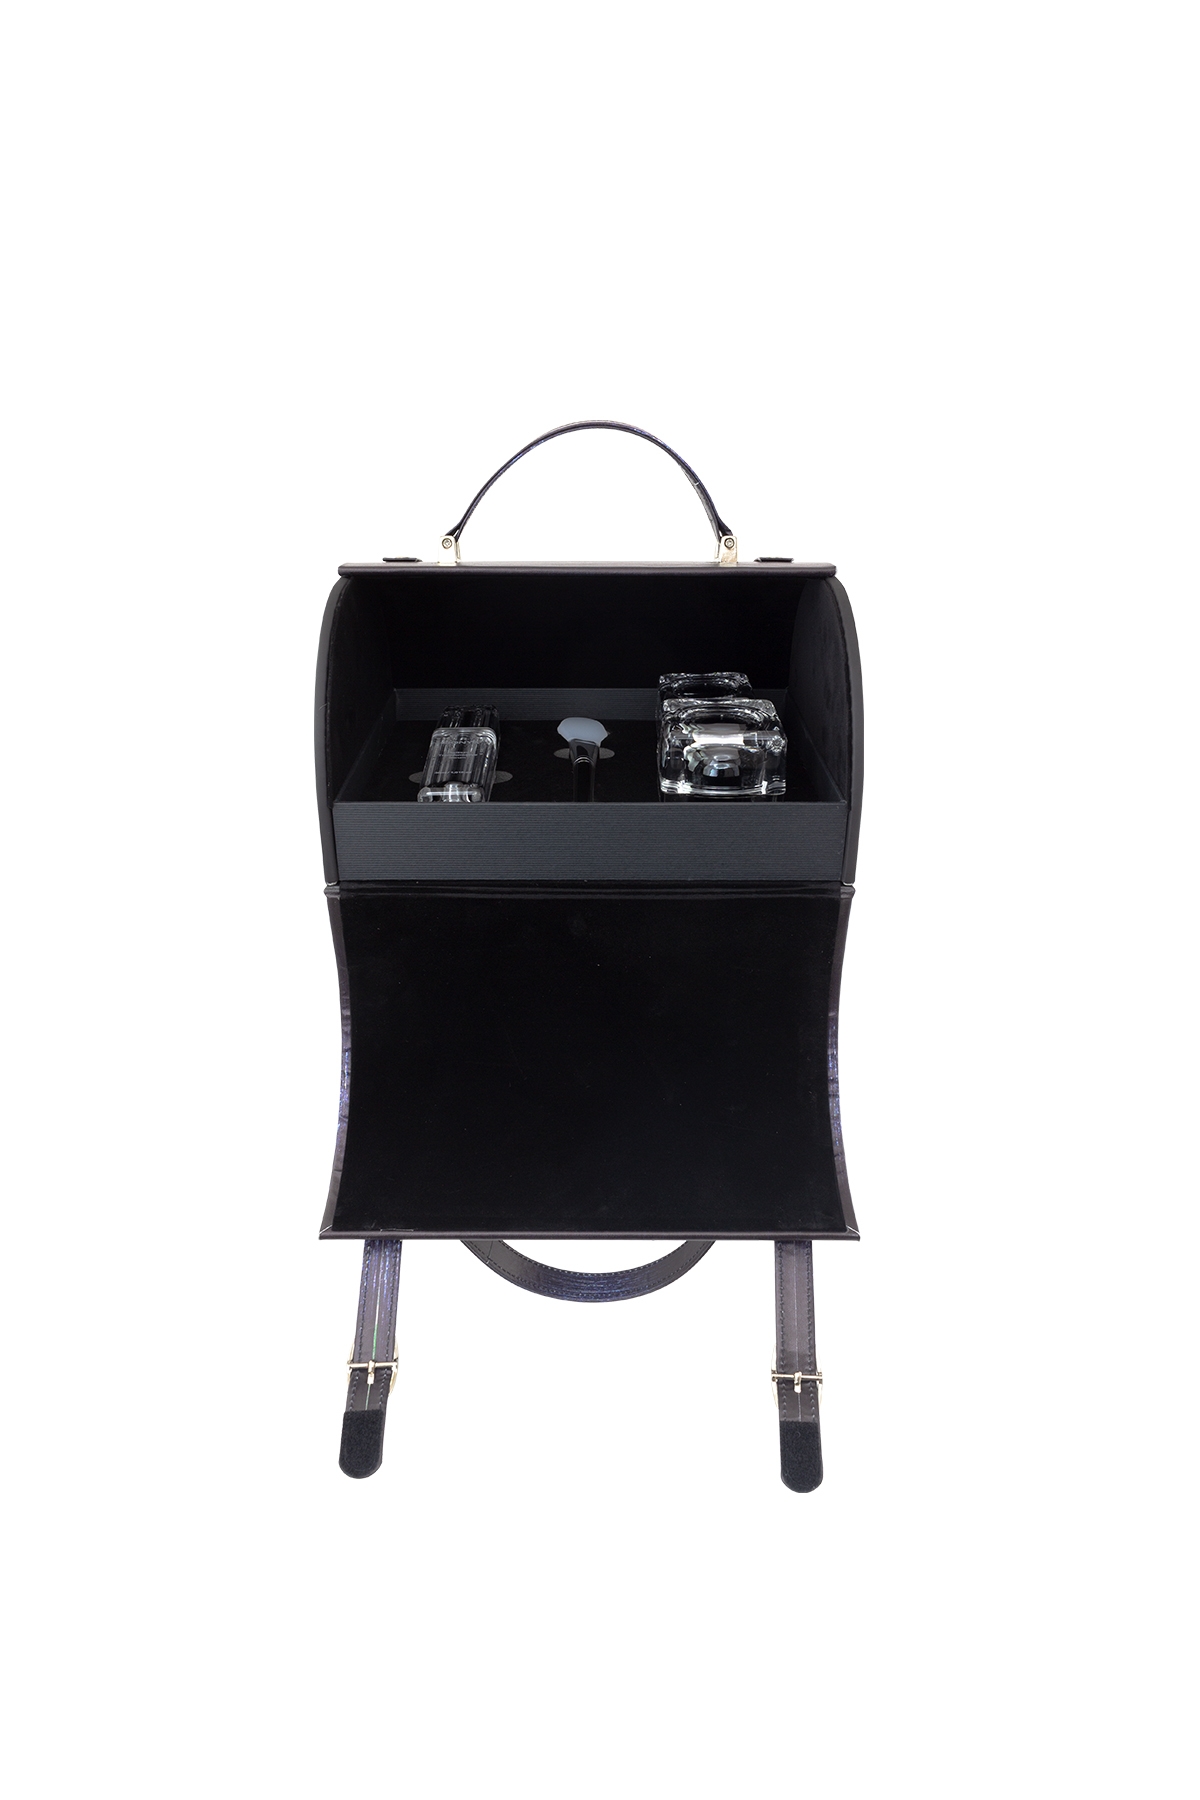 Bionyx Transformative Limited Edition Mini Suitcase Open